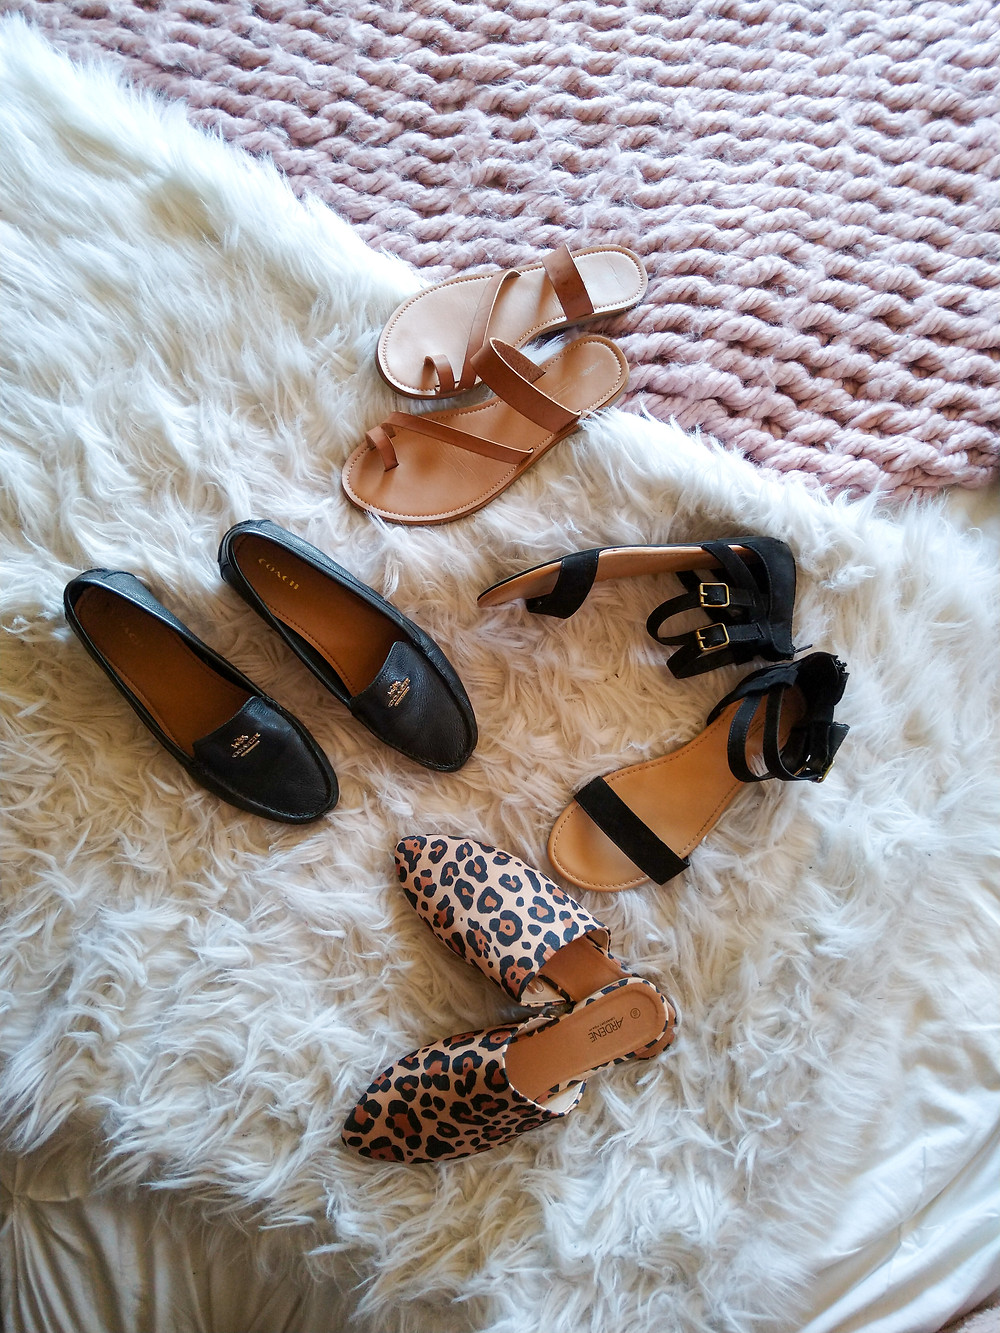 flatlay of shoes, heels and sandals